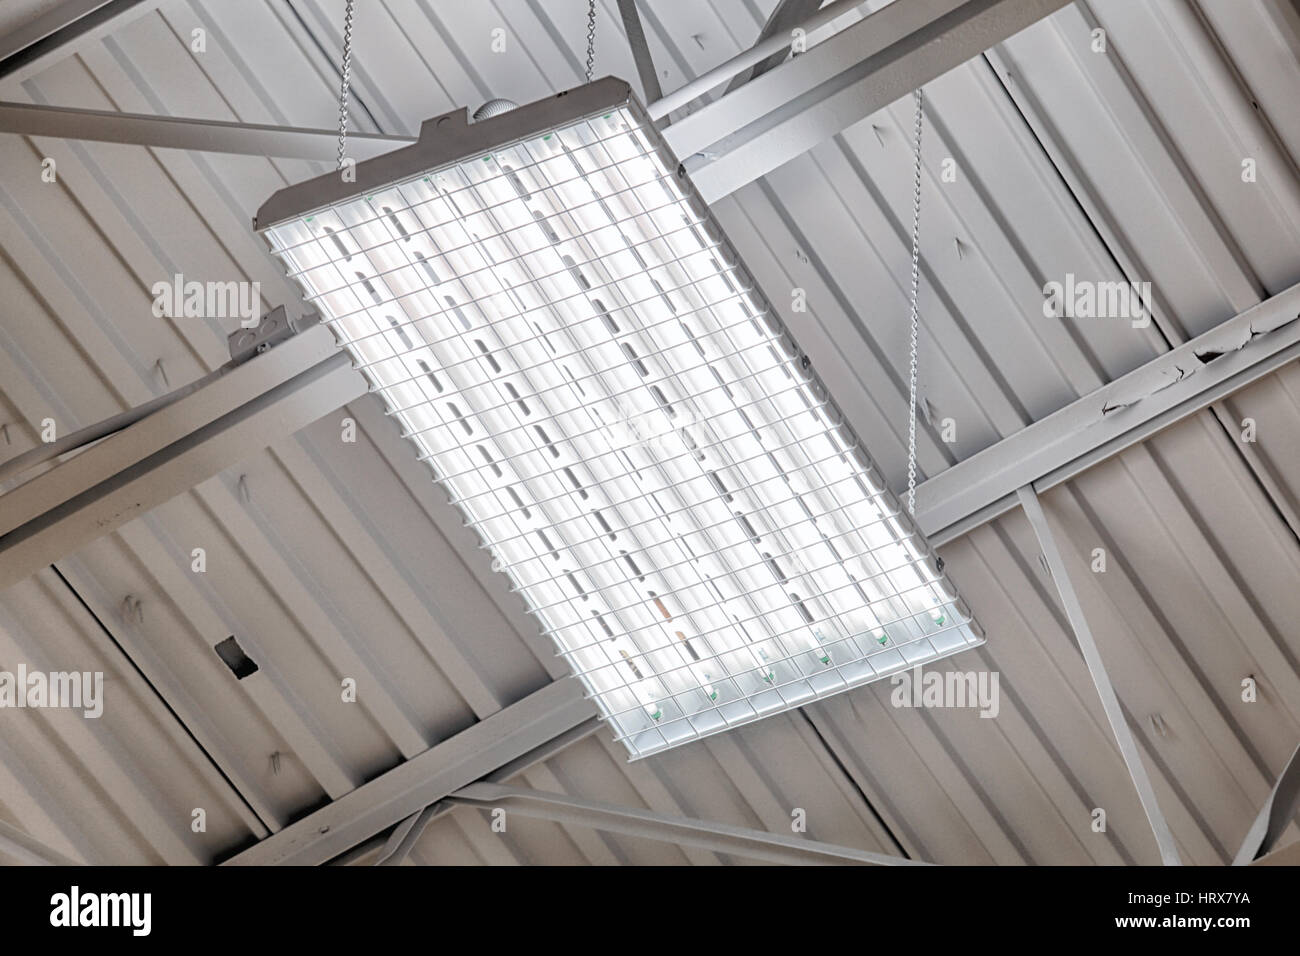 Fluorescent Light Fixture Stock Photos & Fluorescent Light Fixture ...